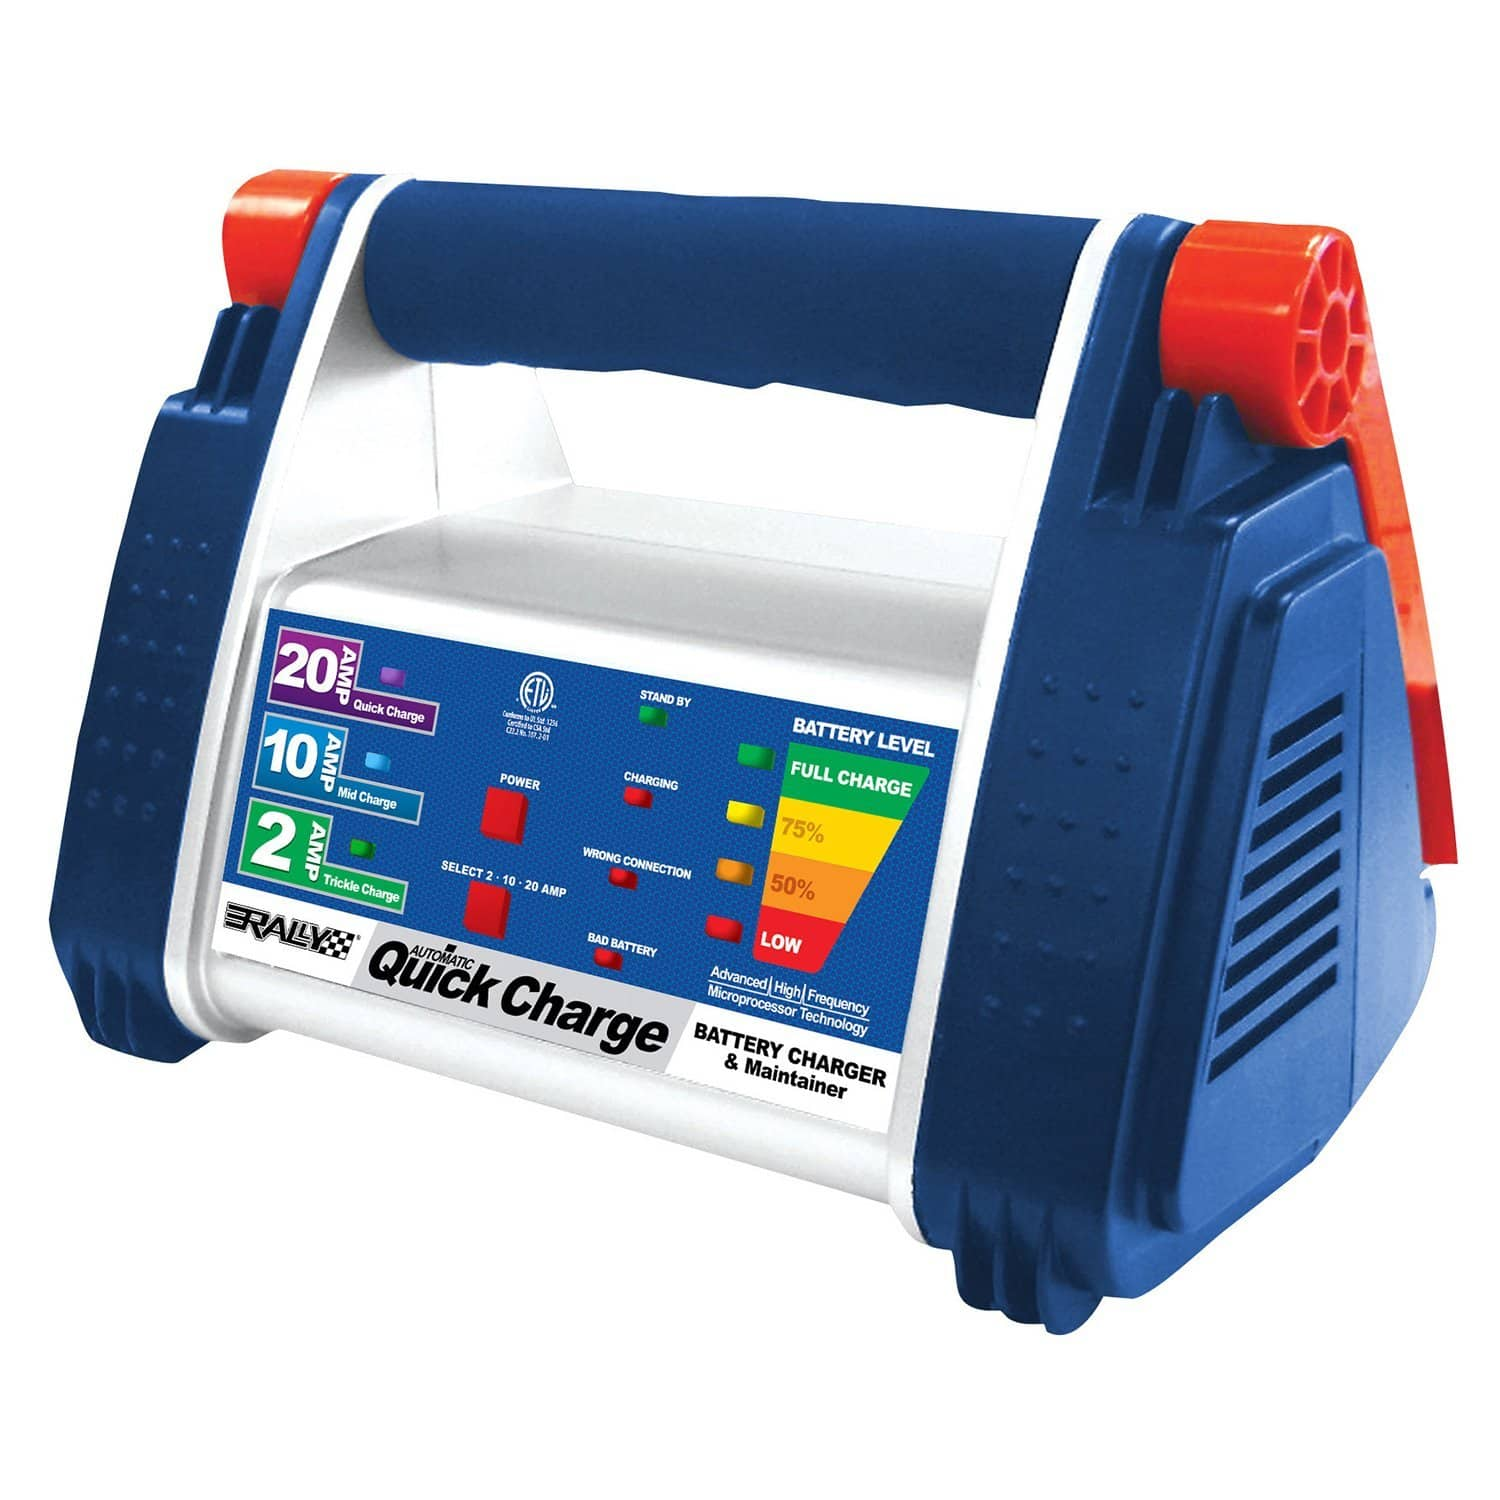 Rally Marine Grade 20 Amp Quick Battery Charger & Maintainer  $23 + Free Shipping